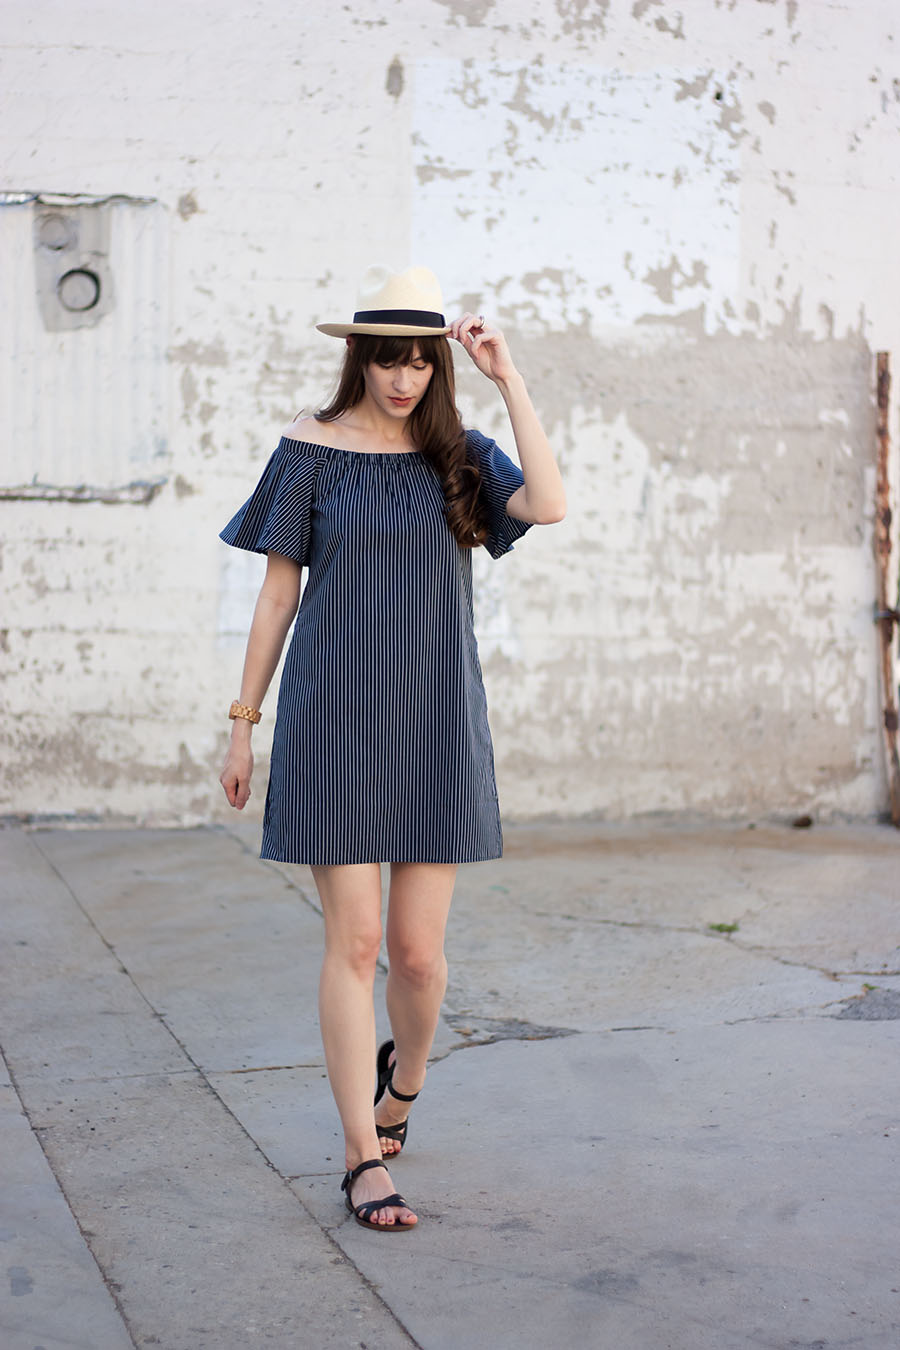 J.Crew Panama Hat, Striped Off The Shoulder Dress, Madewell Sandals